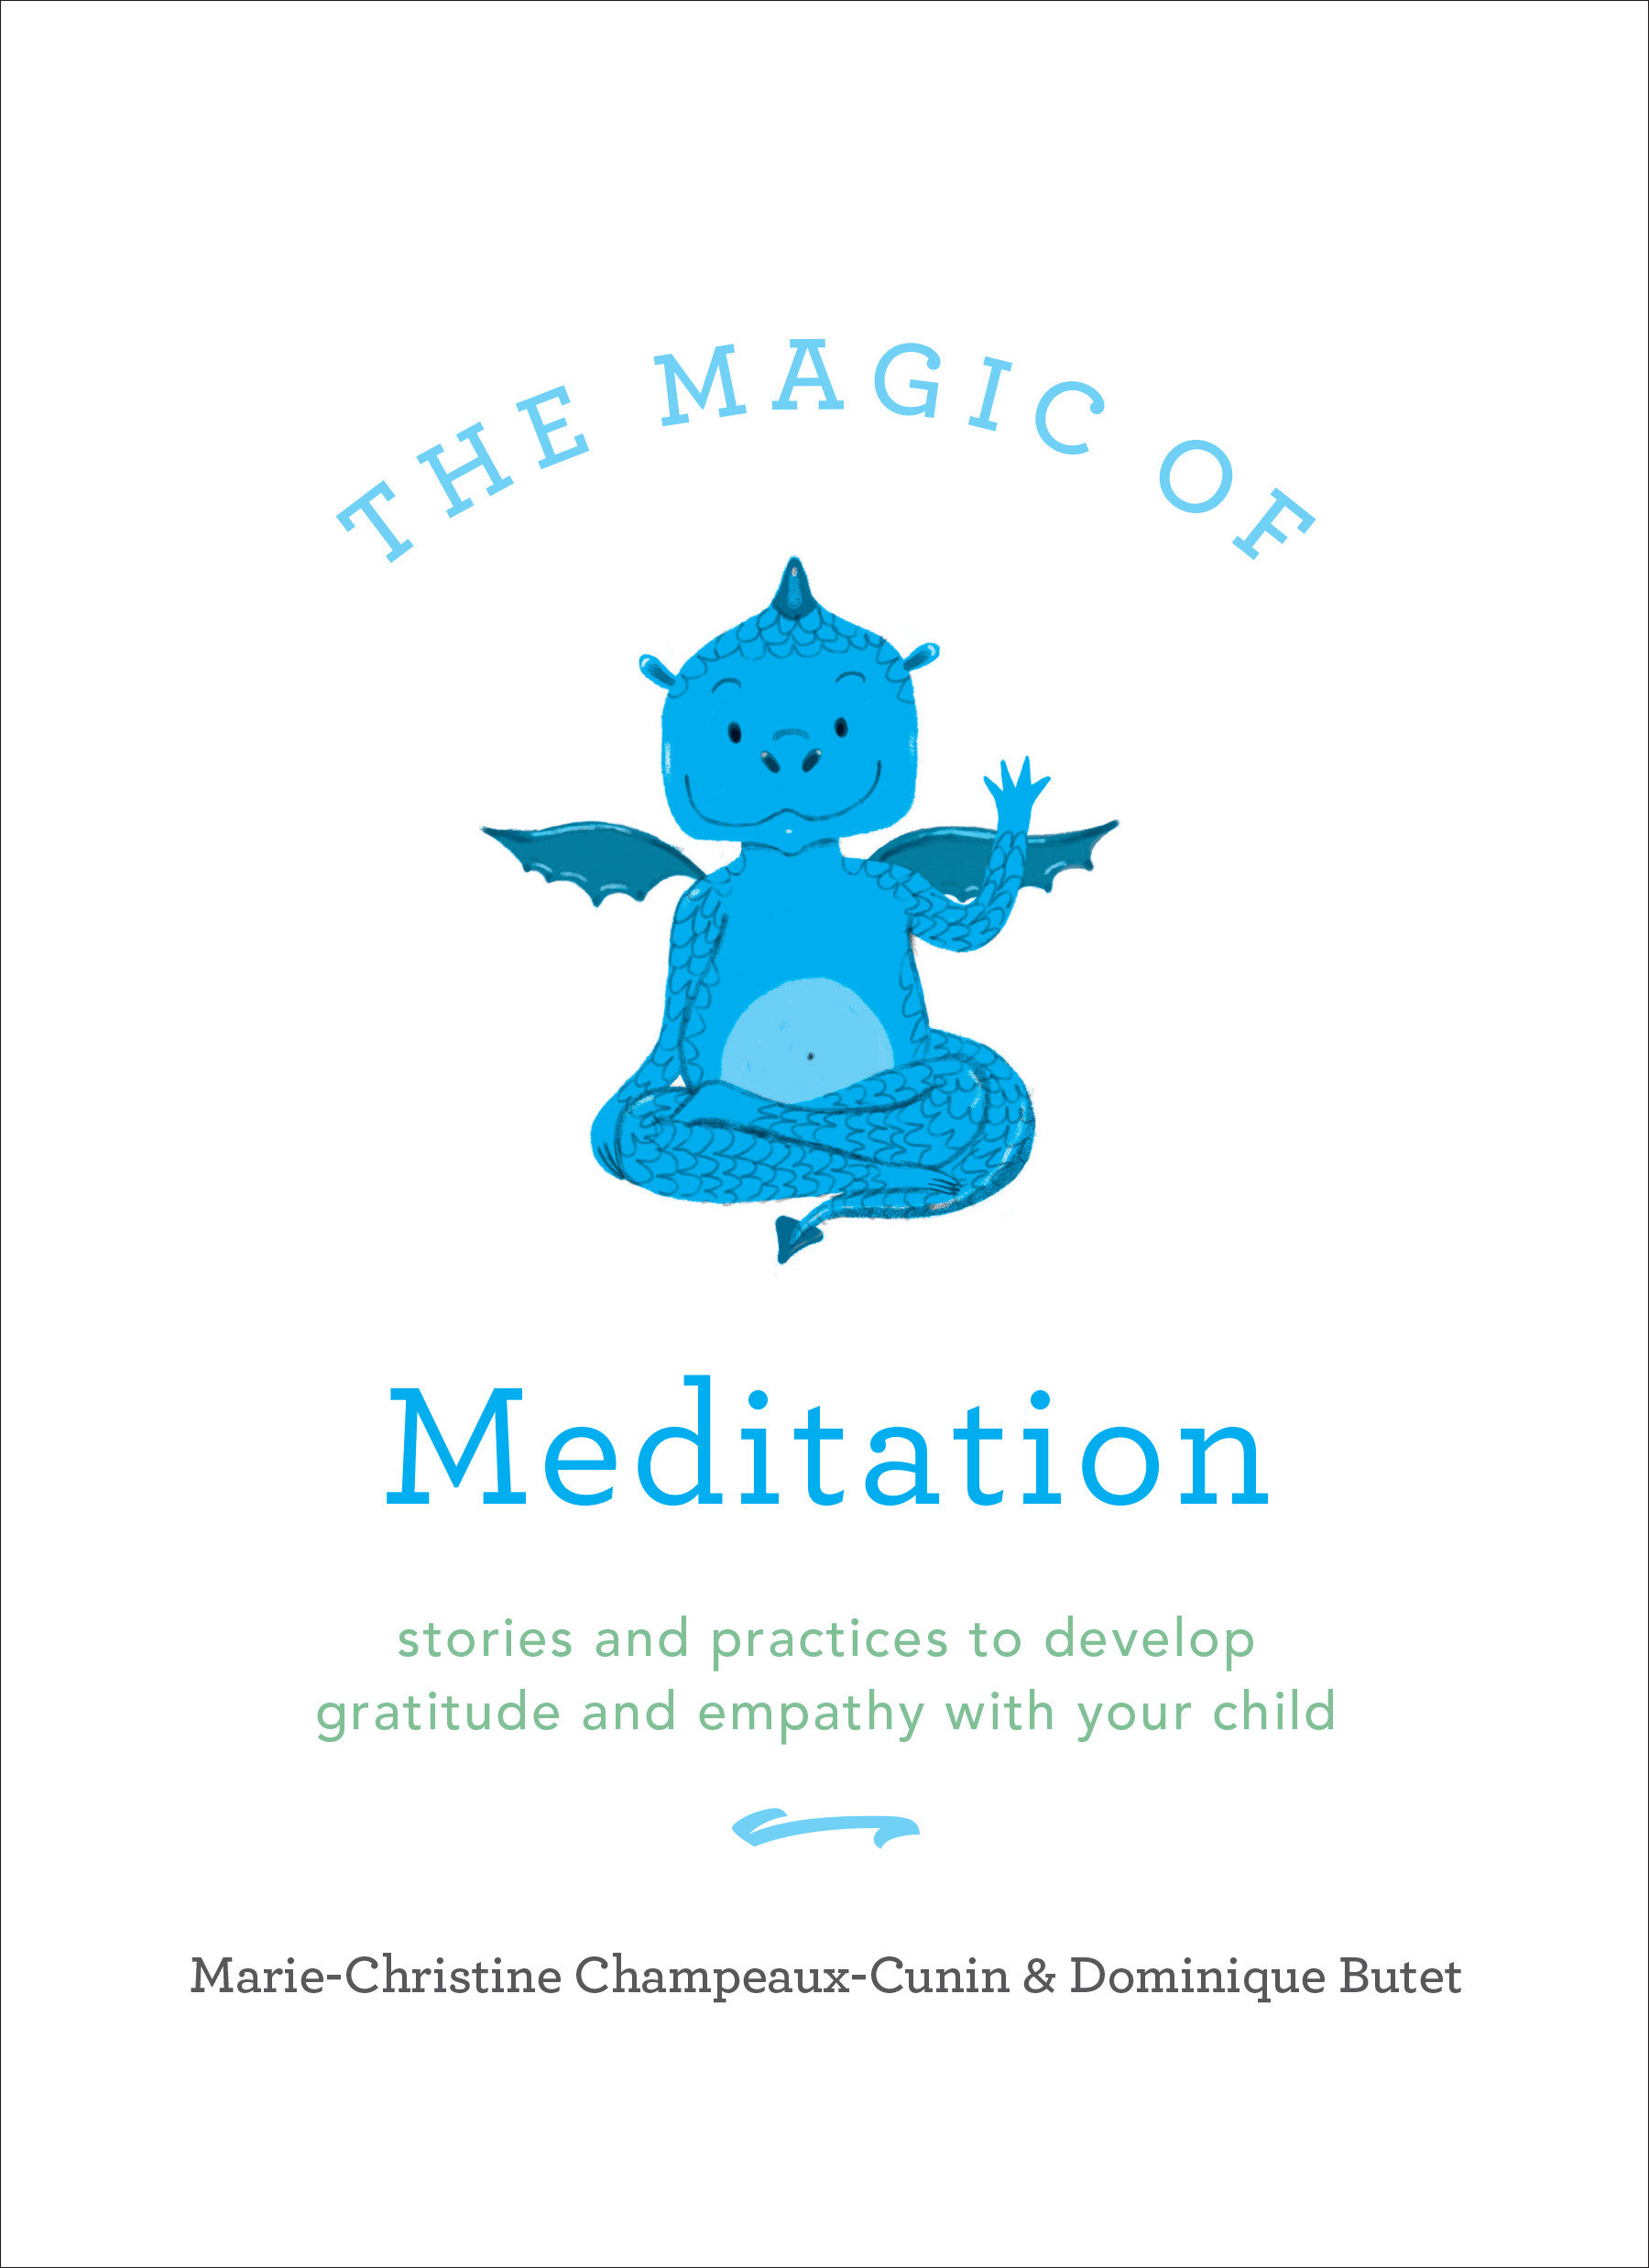 The Magic of Meditation Stories and Practices to Develop Gratitude and Empathy with Your Child